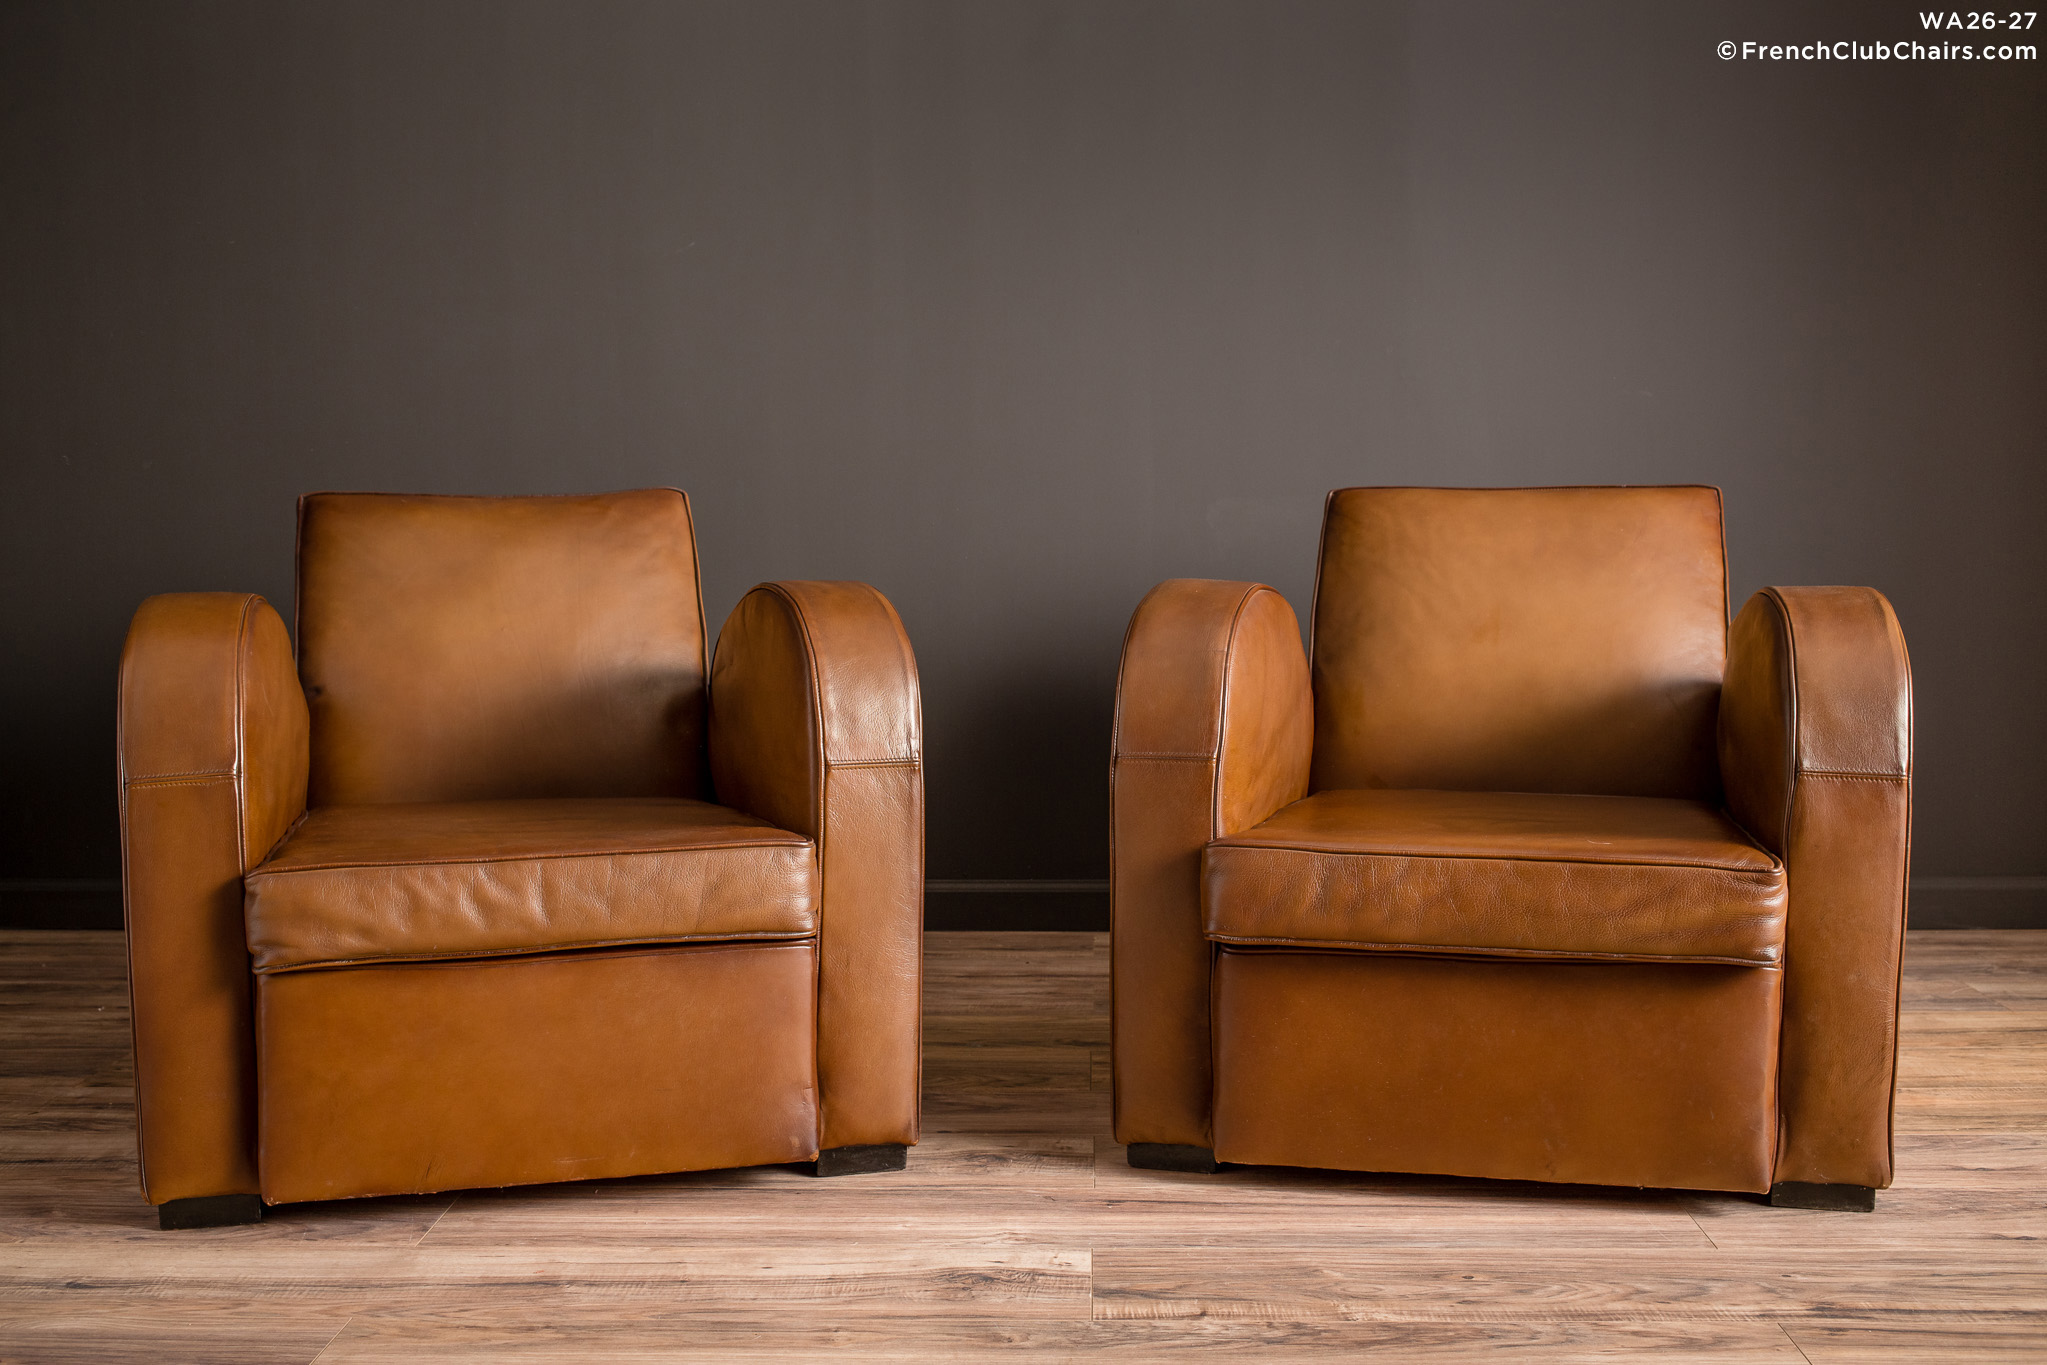 WA_26-27_Streamline_Classic_Square_Pair_R_1TQ-v01-williams-antiks-leather-french-club-chair-wa_fcccom